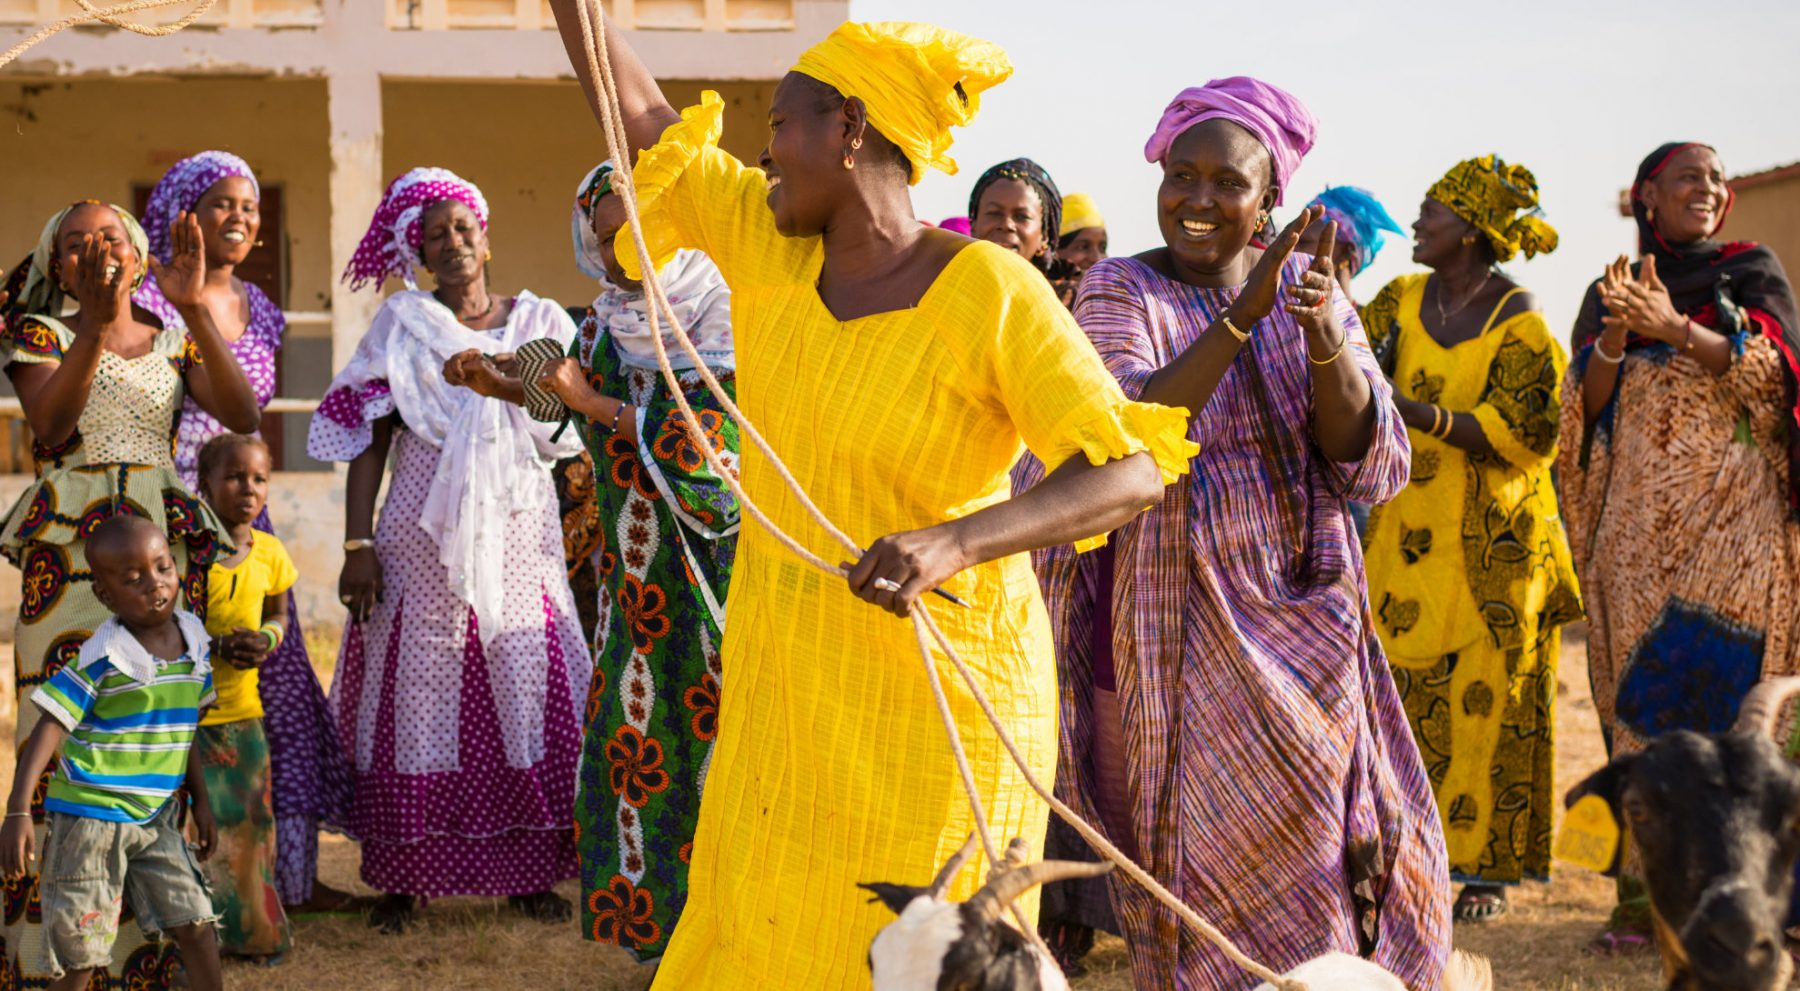 A group of women farmers dancing